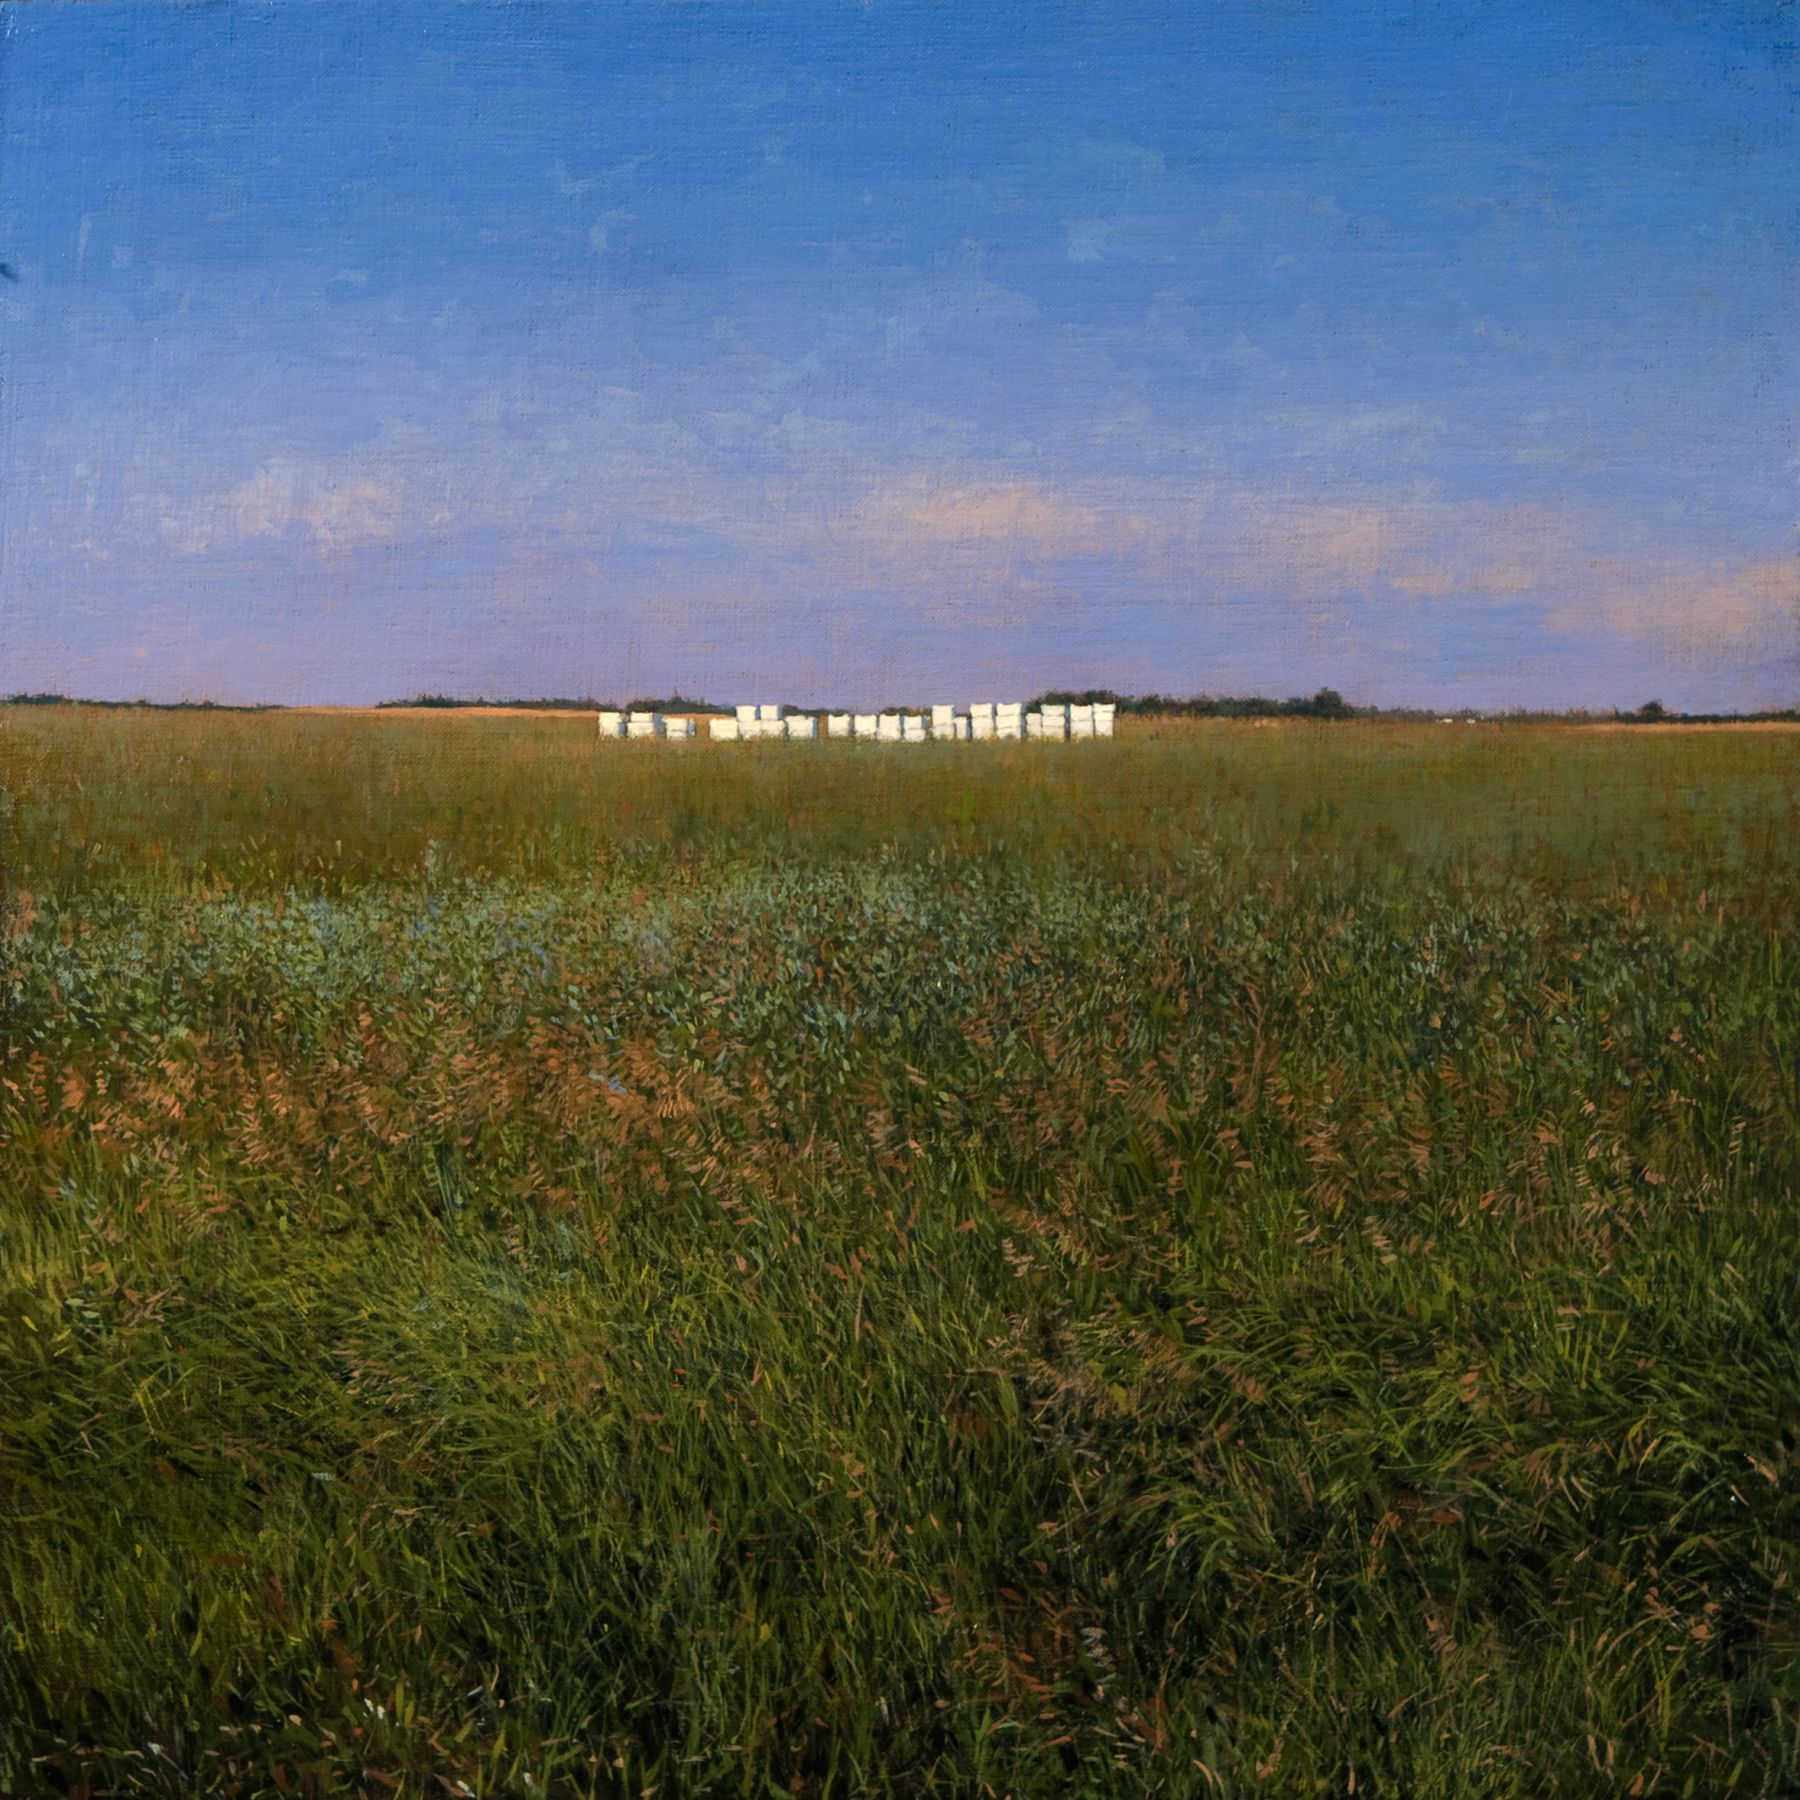 Linden Frederick, Bee Keeper (SOLD), 2008, oil on panel, 12 1/4 x 12 1/4 inches